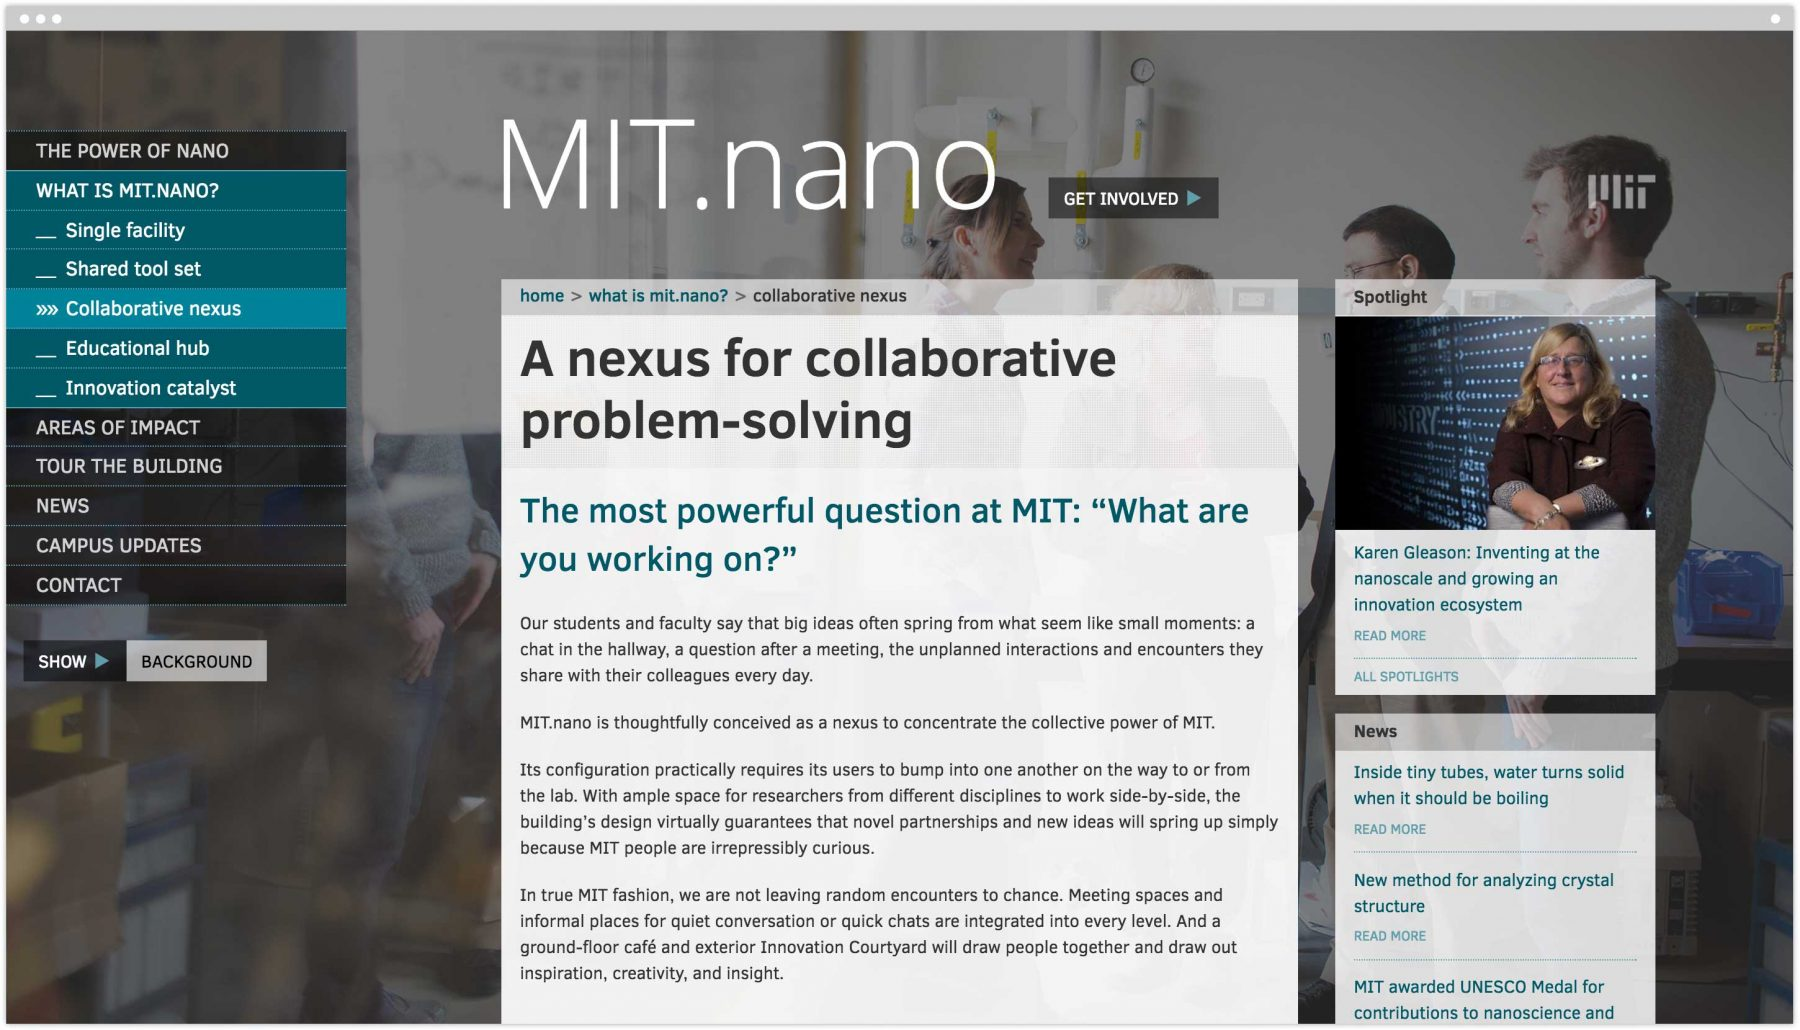 A nexus for collaborative problem-solving interior page